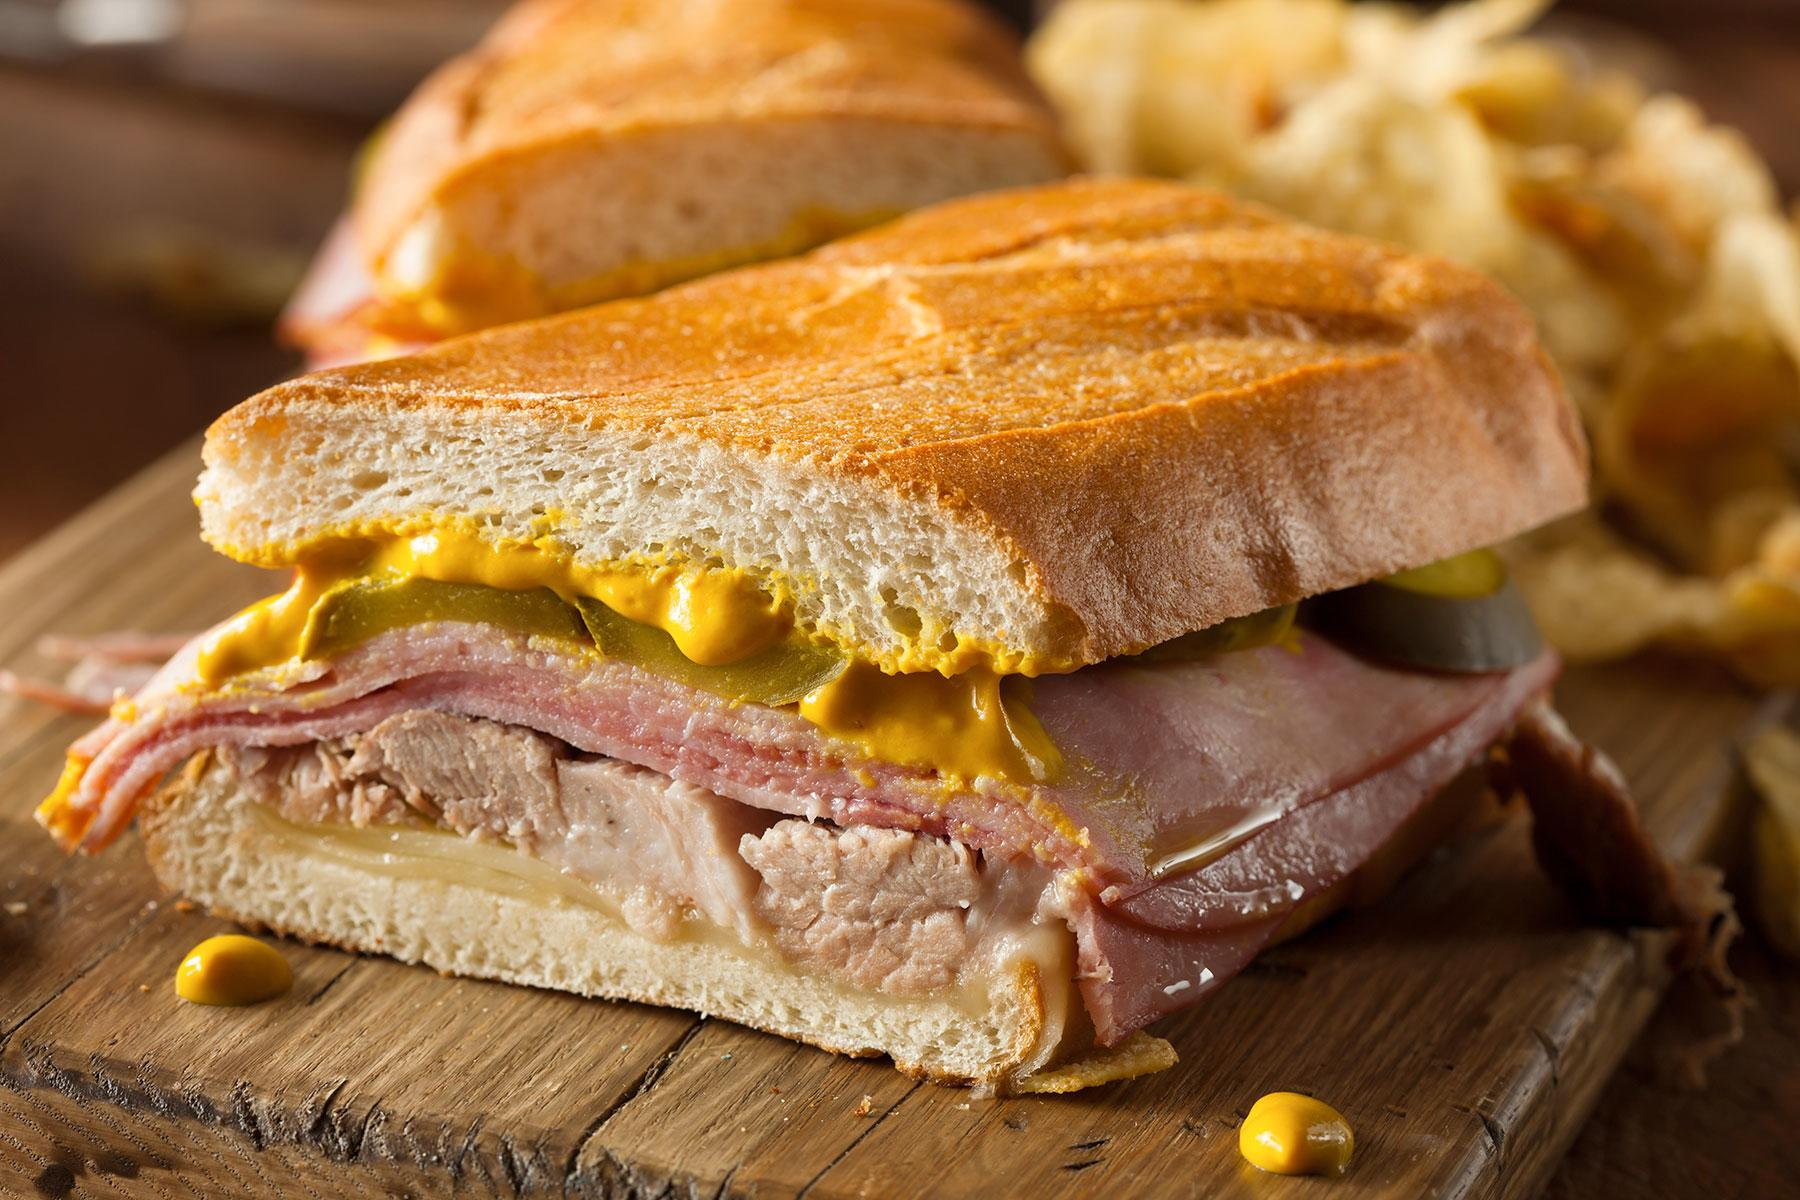 30 Sandwiches From Around The World